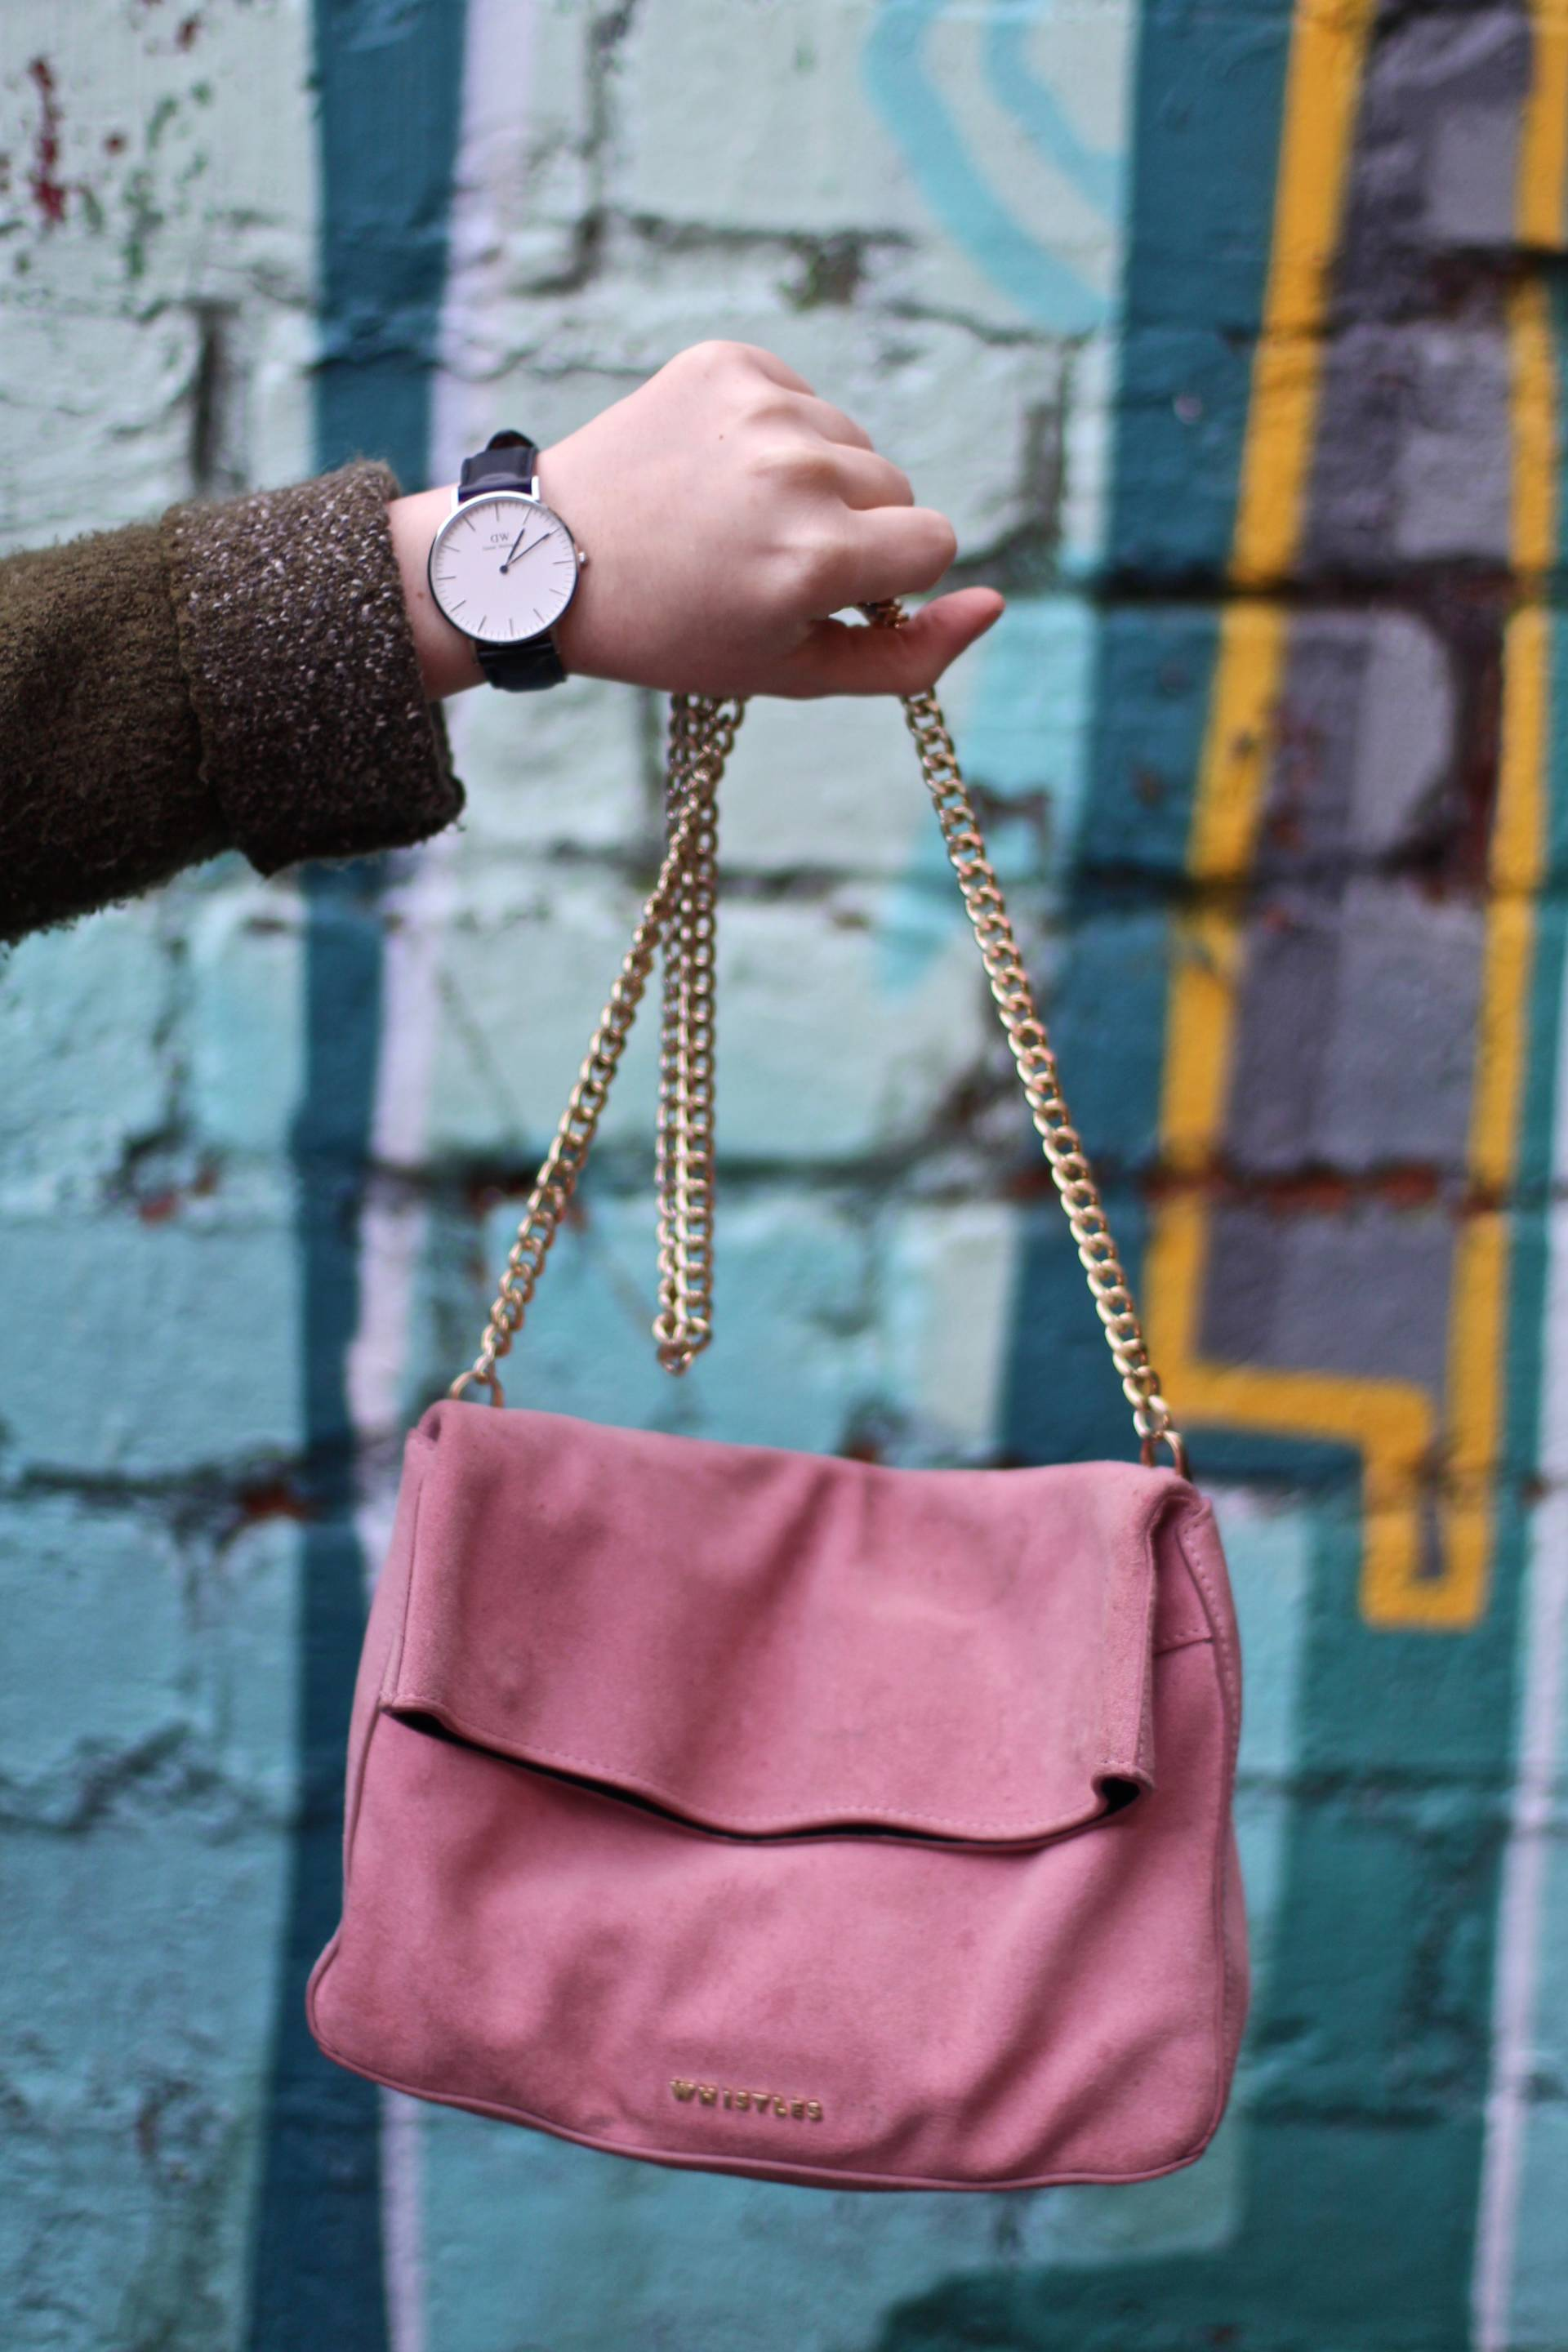 Whistles chain bag and daniel wellington watch